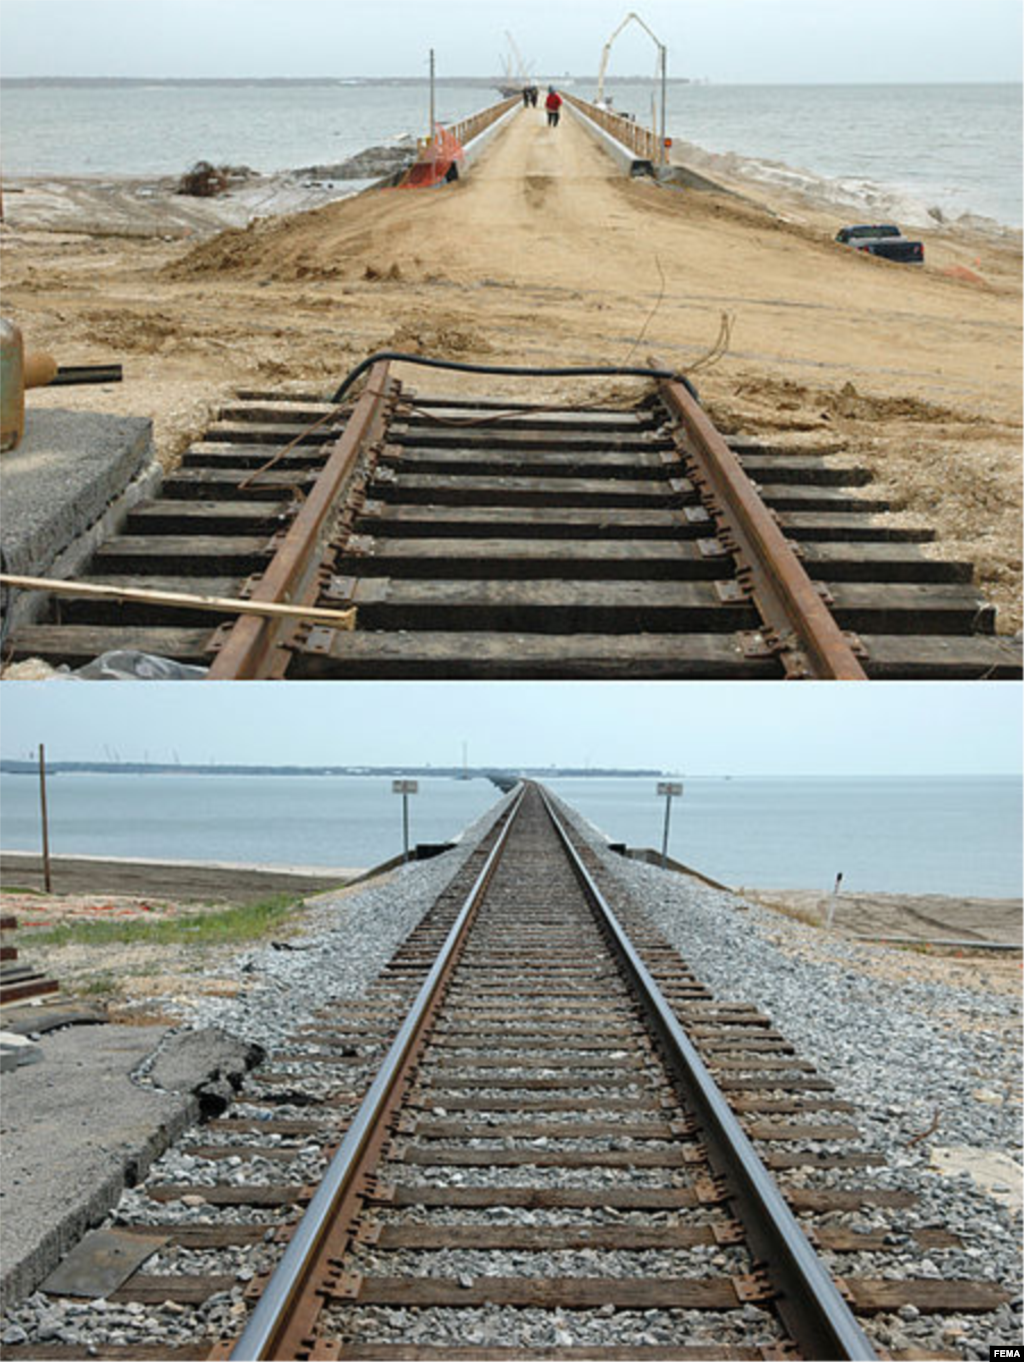 The railroad bridge across Bay St. Louis before and after its repair. The bridge was destroyed by Hurricane Katrina, Bay St. Louis, Mississippi, Dec. 8, 2005 and Aug. 9, 2006. (Mark Wolfe/FEMA)